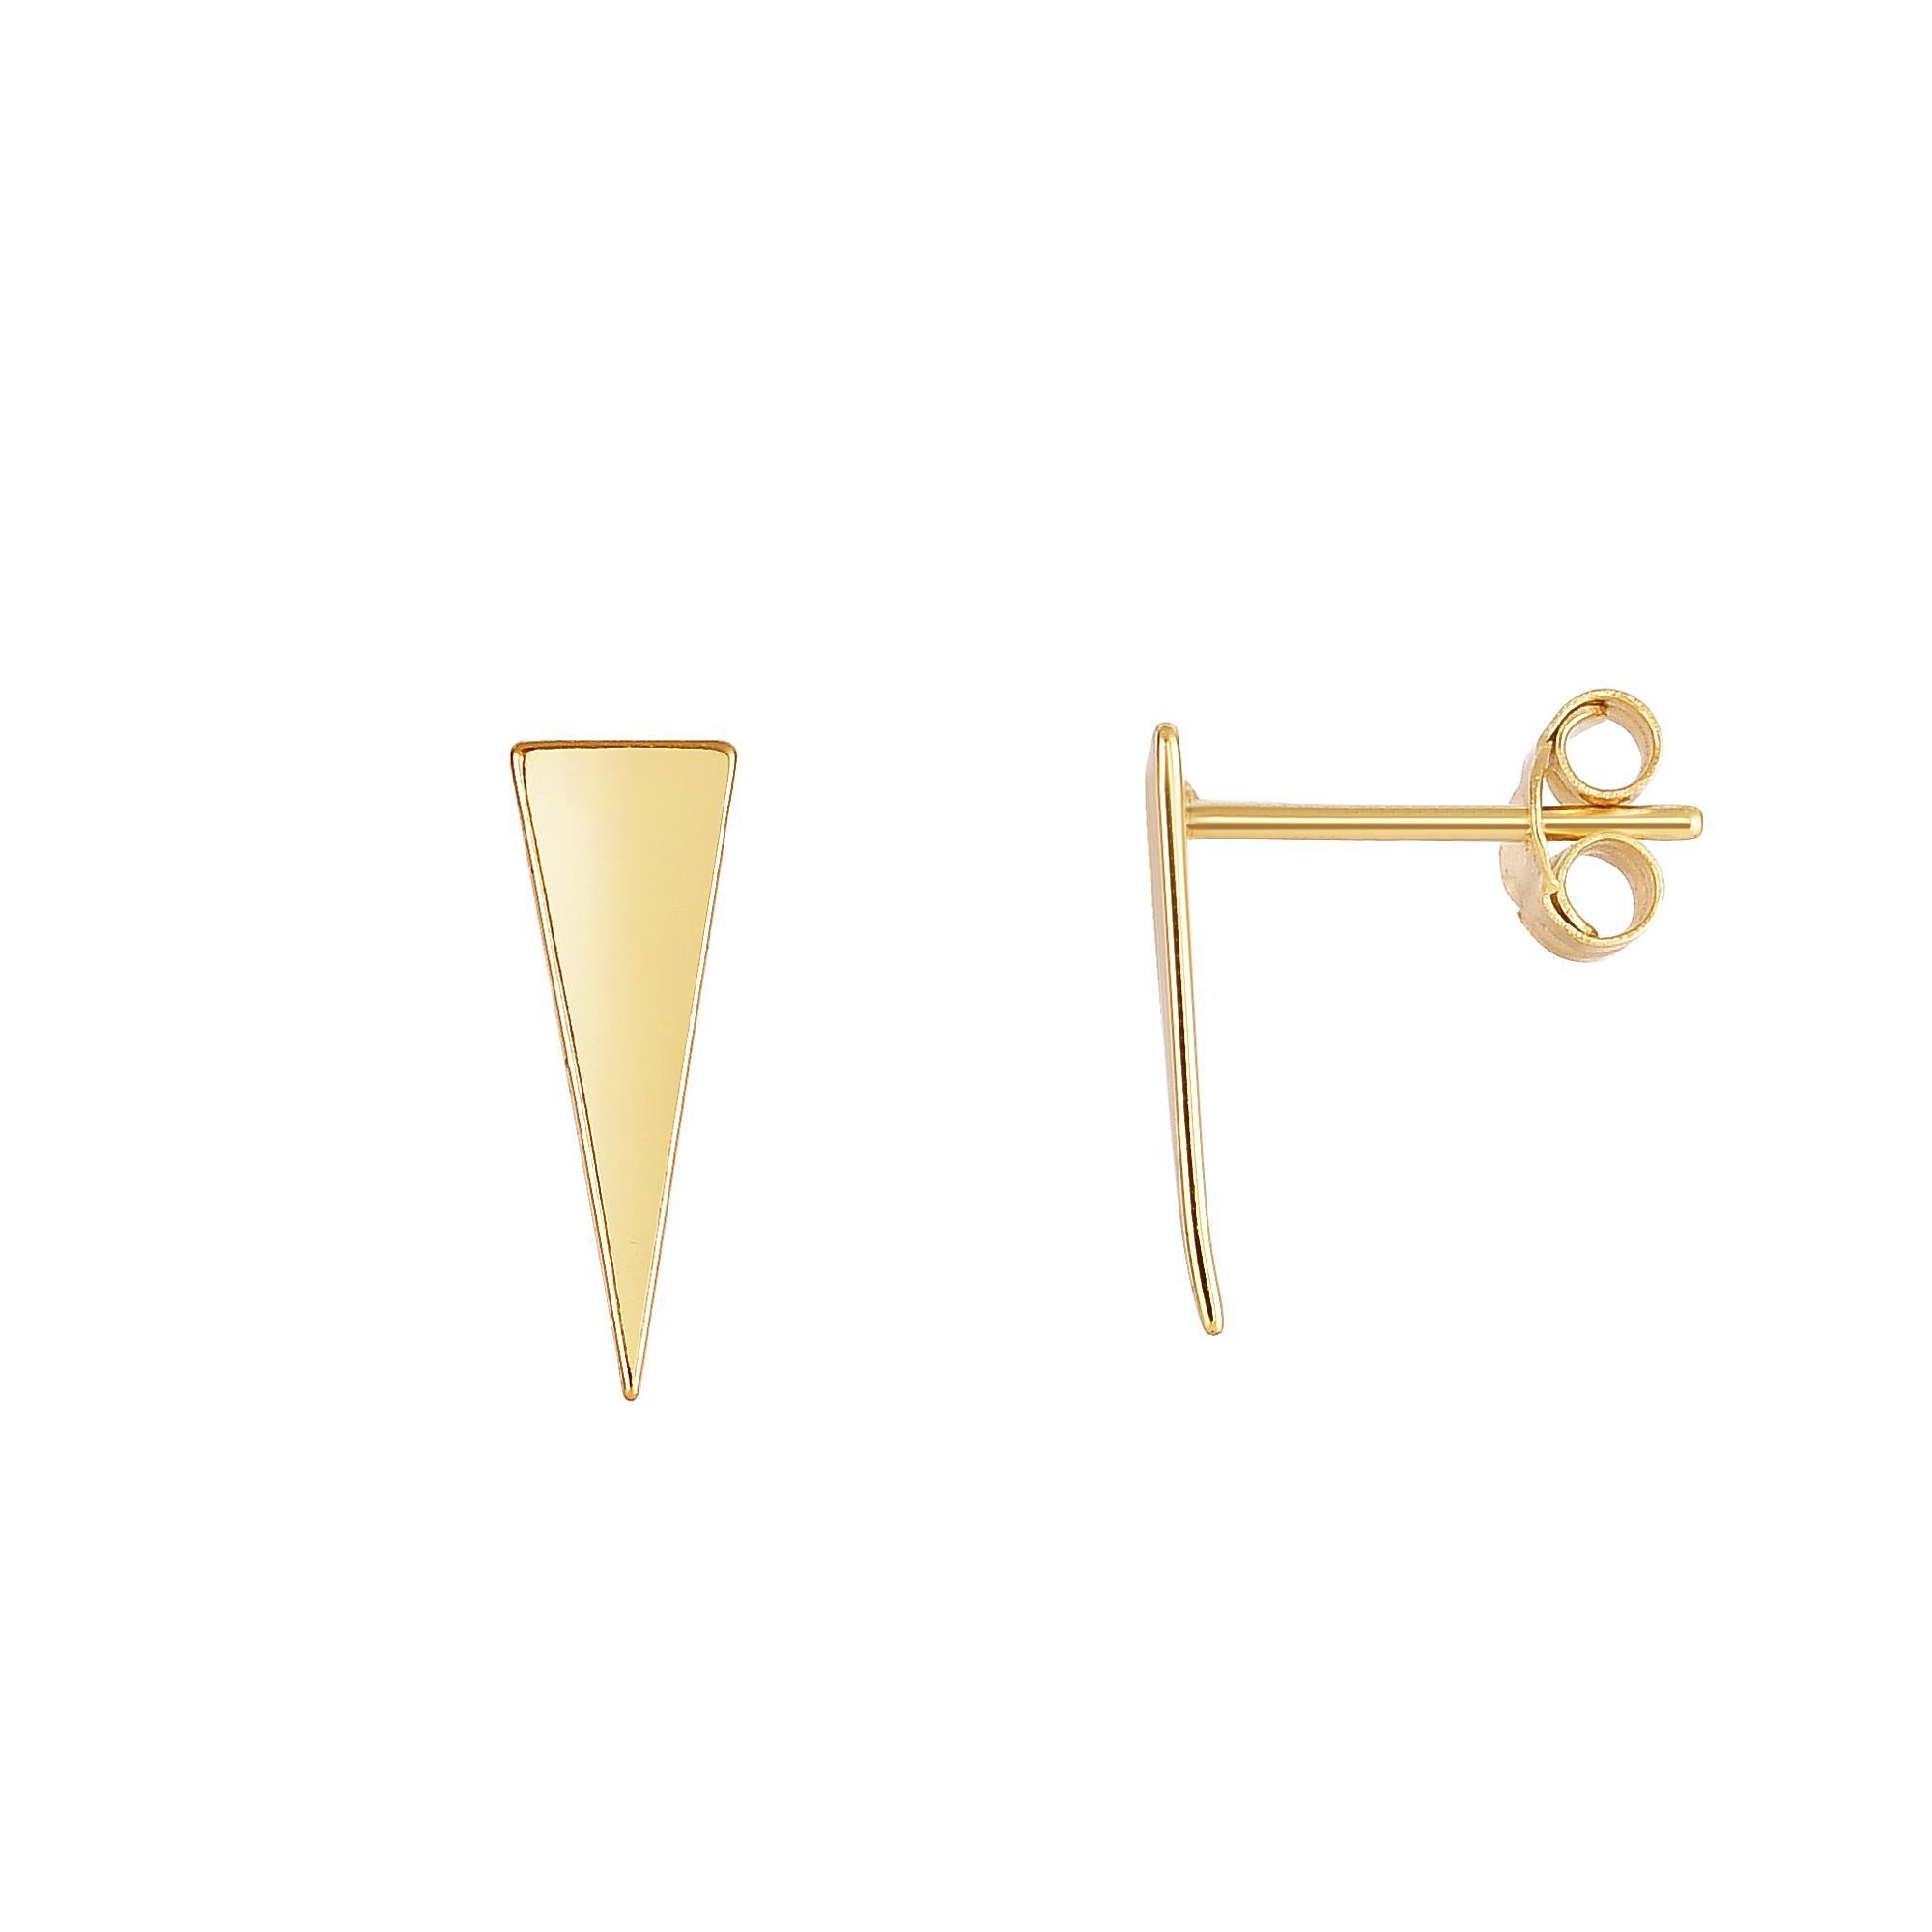 stone long bar earring products insta stud and strand extra xyz